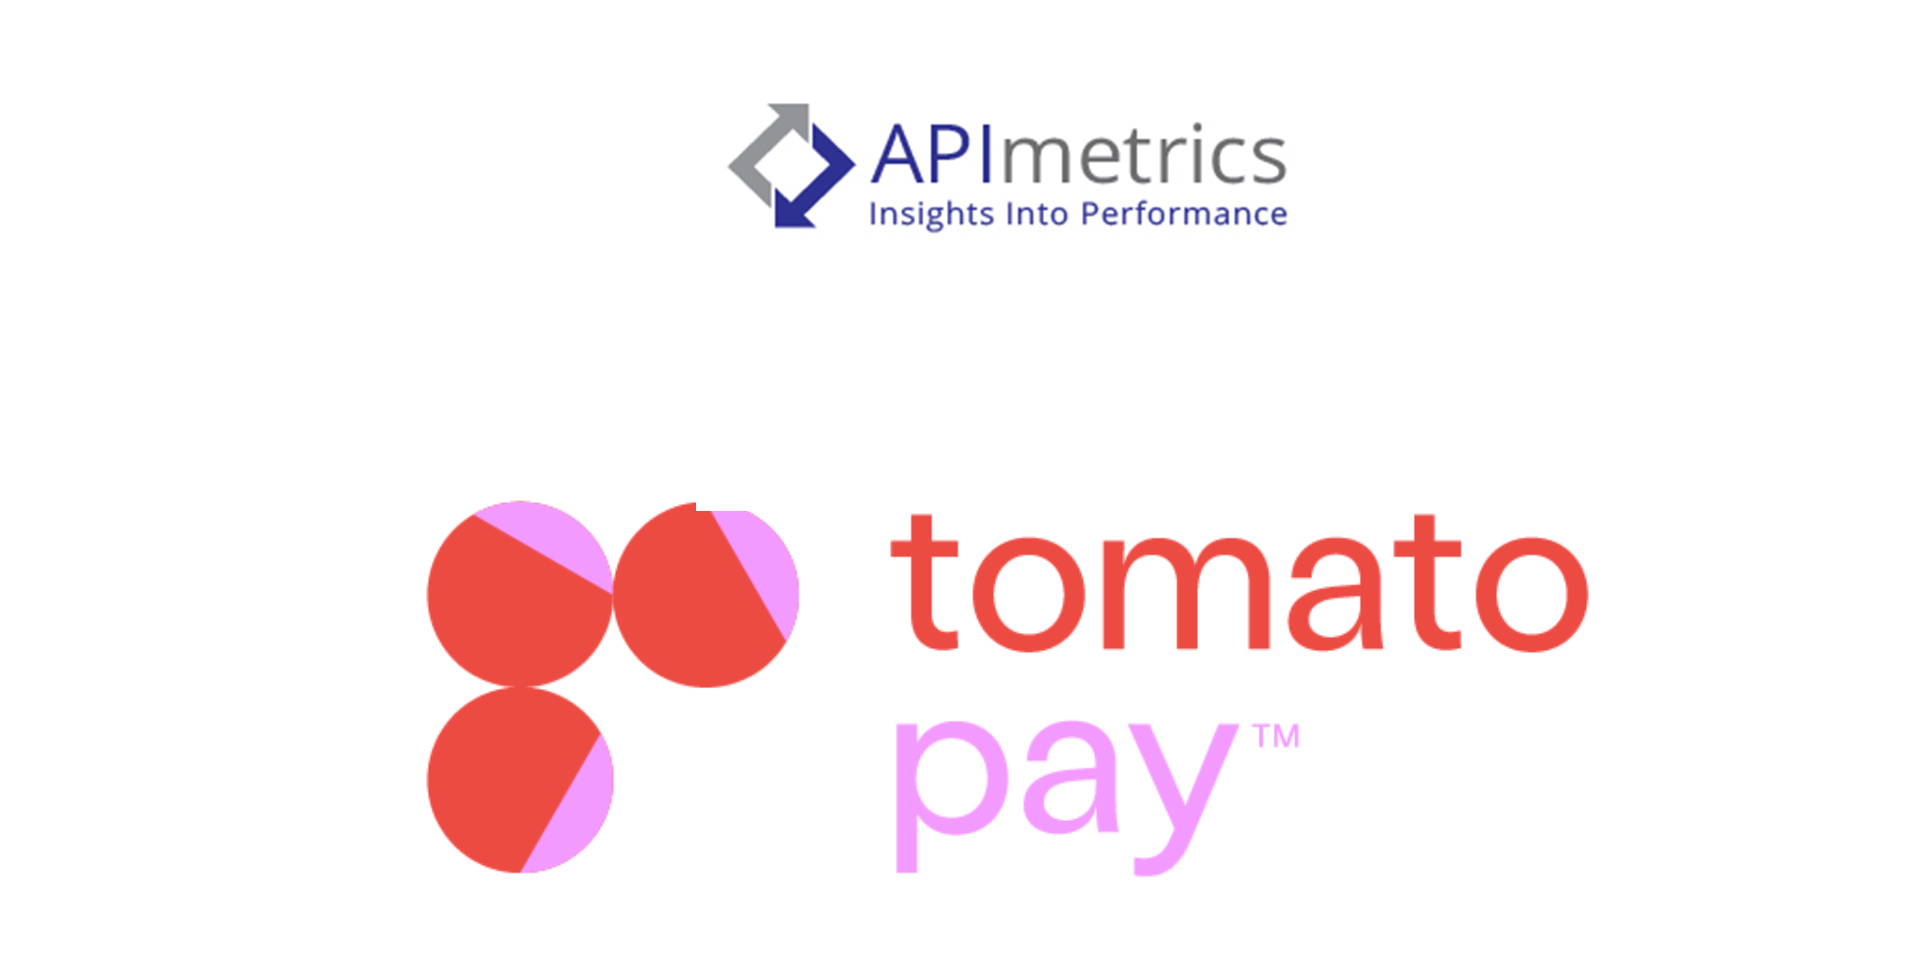 APImetrics and tomato pay Partner to Provide Accurate Production Performance Metrics for UK Open Banking APIs